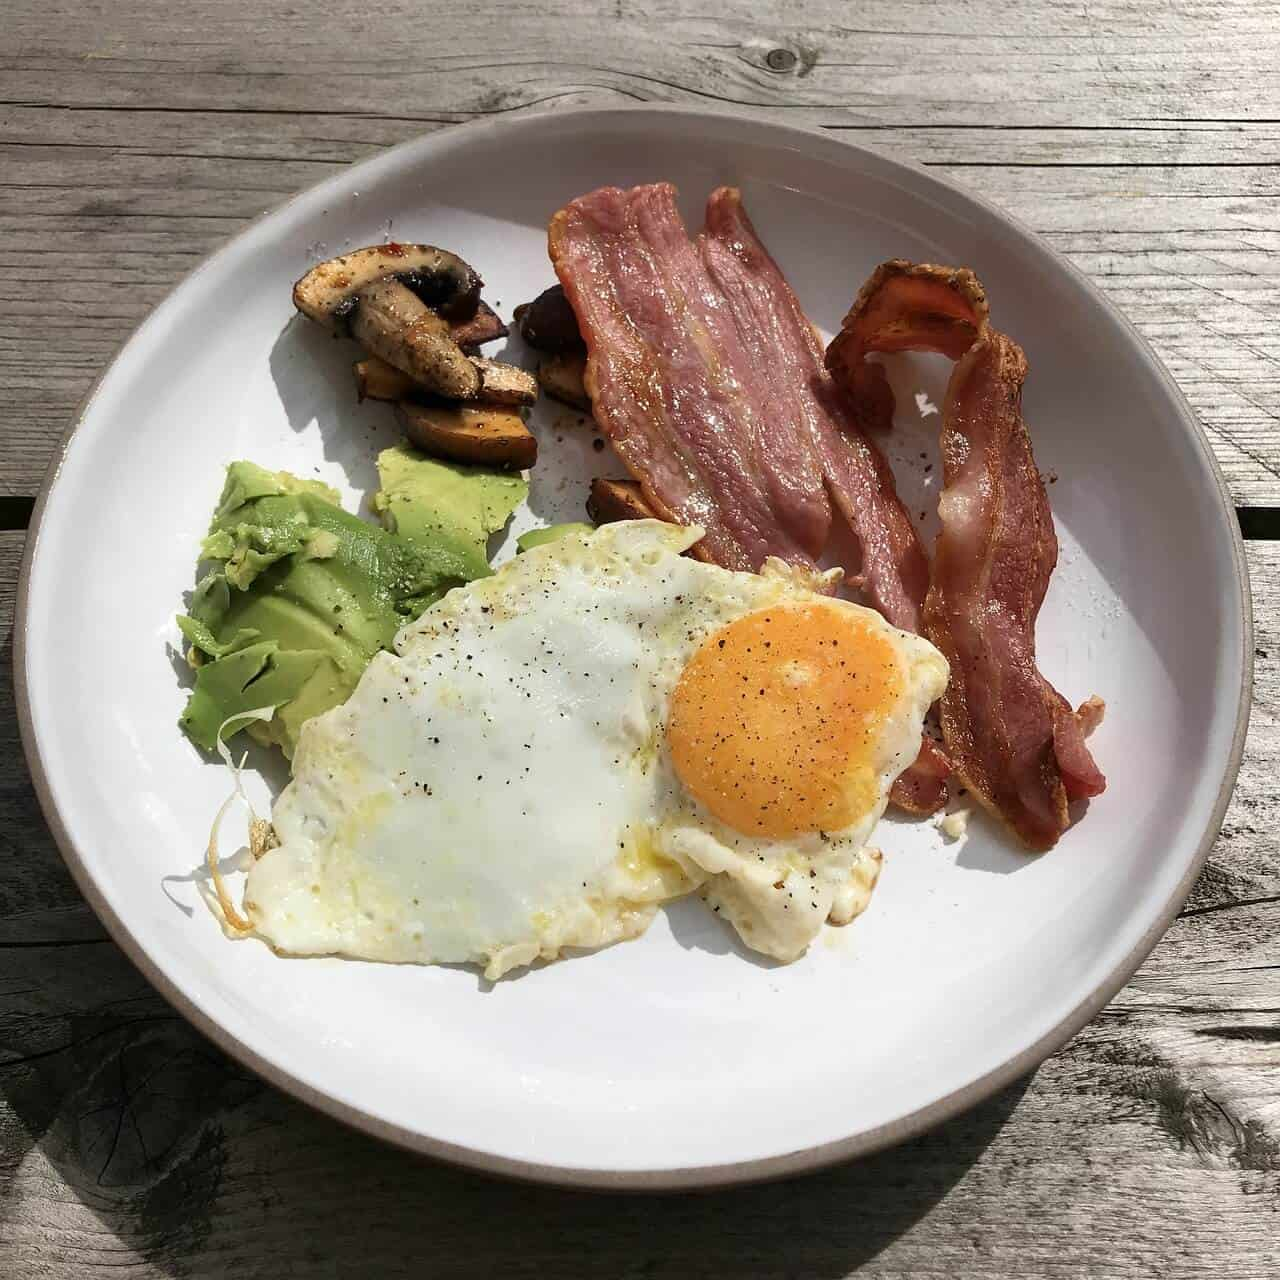 Keto-friendly food